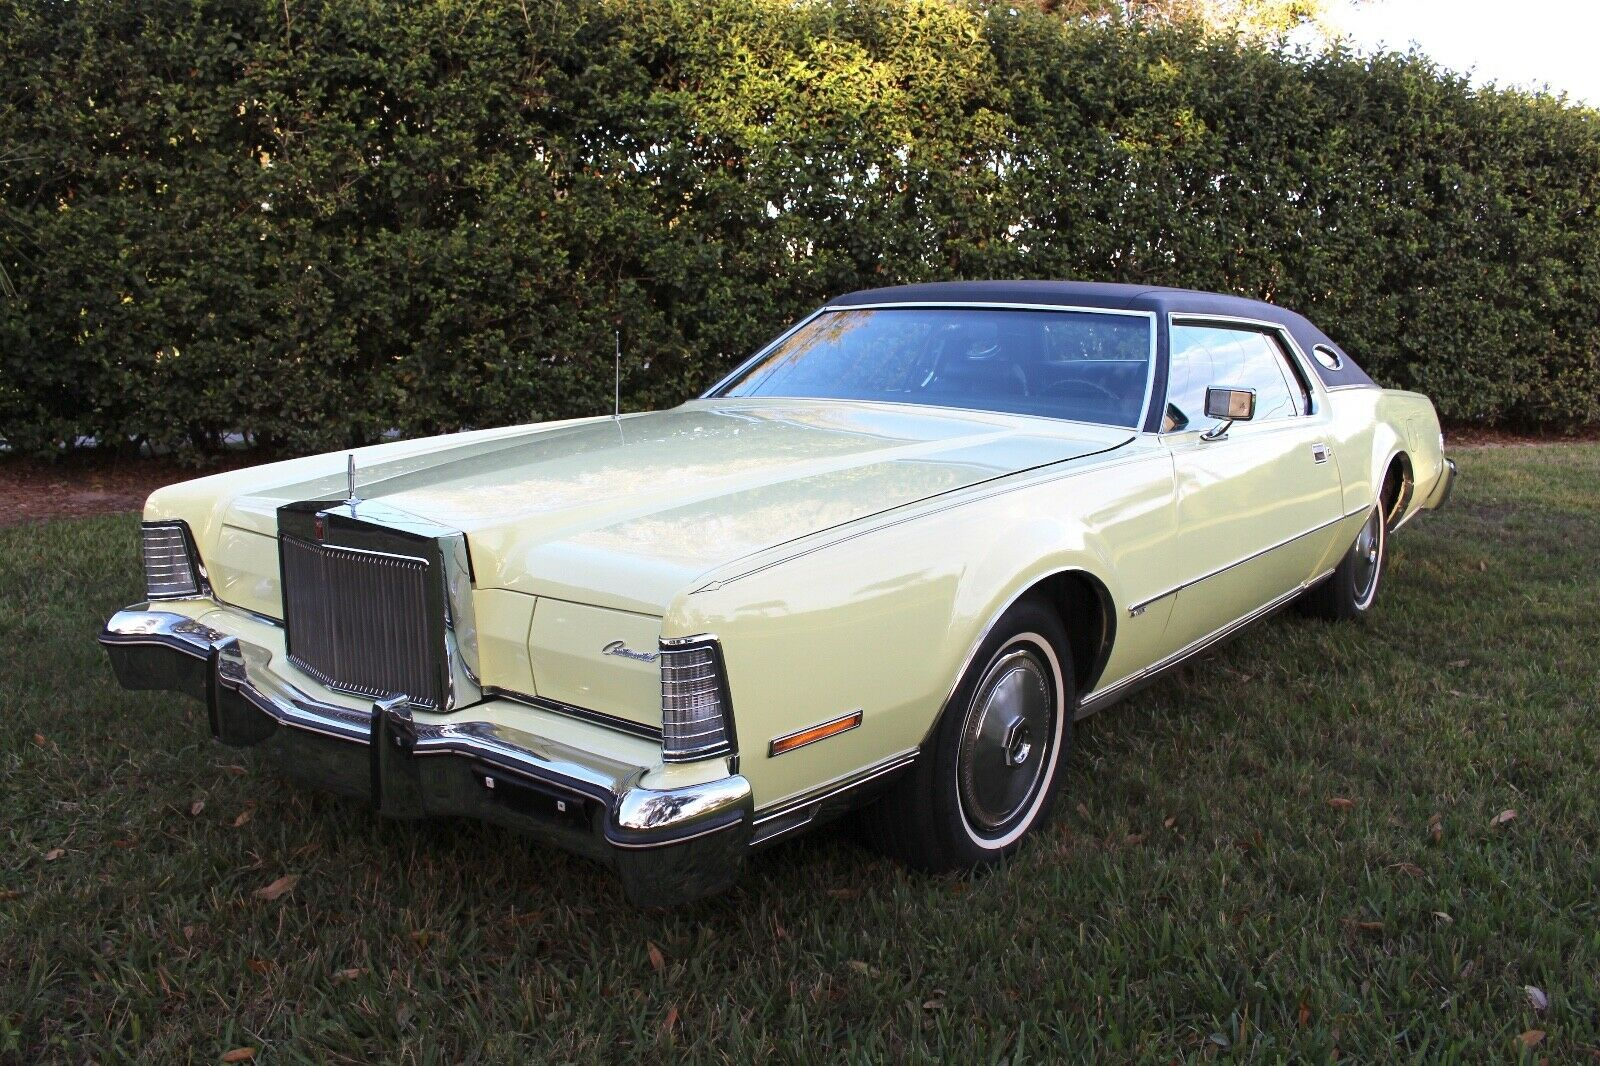 1974 Lincoln Continental Mark IV 51k ORIGINAL MILES 460 V8 100+ HD Pics 1974 Lincoln Continental Mark IV 51k ORIGINAL MILES 460 V8 100+ HD Pics